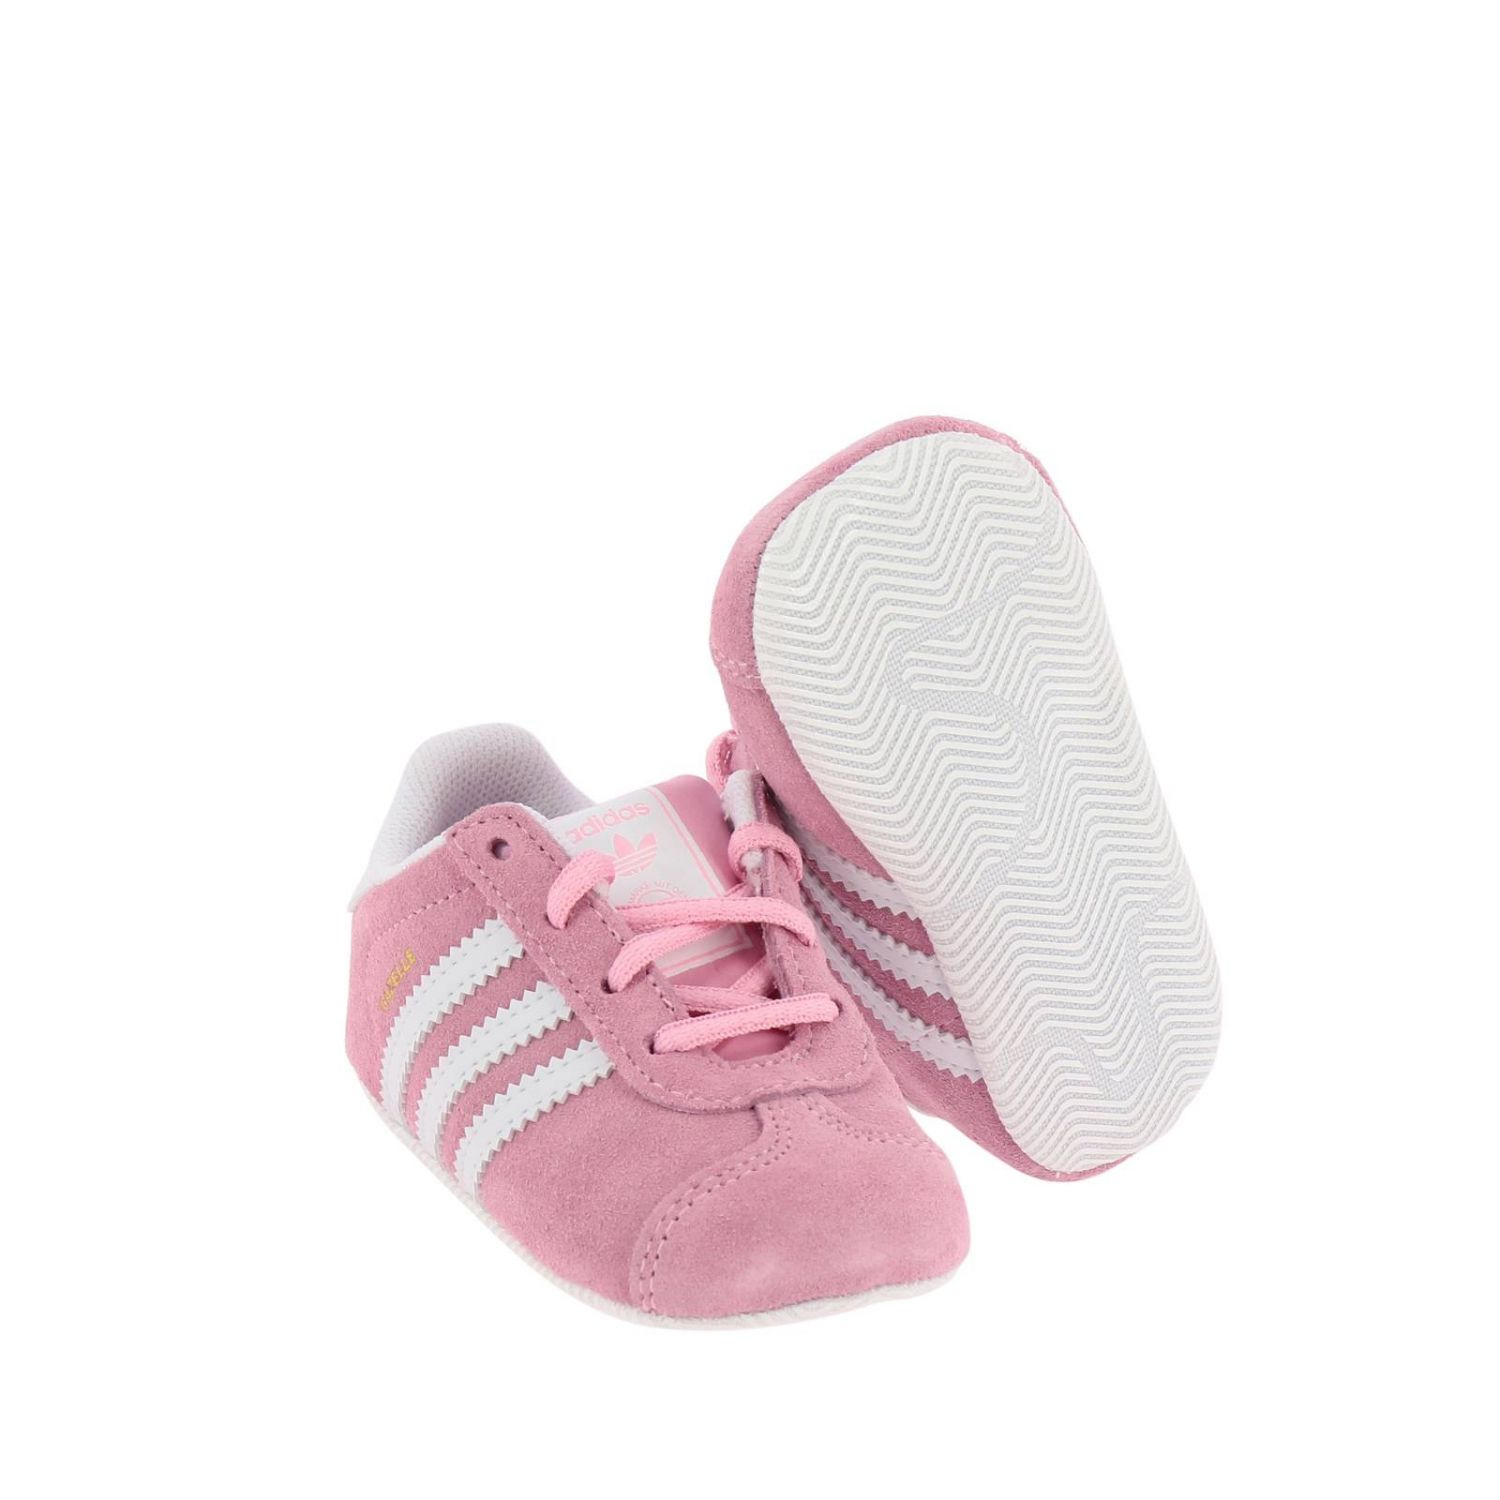 Shoes Adidas Originals: Gazelle Crib Adidas Originals Classic sneakers in suede and smooth leather pink 2